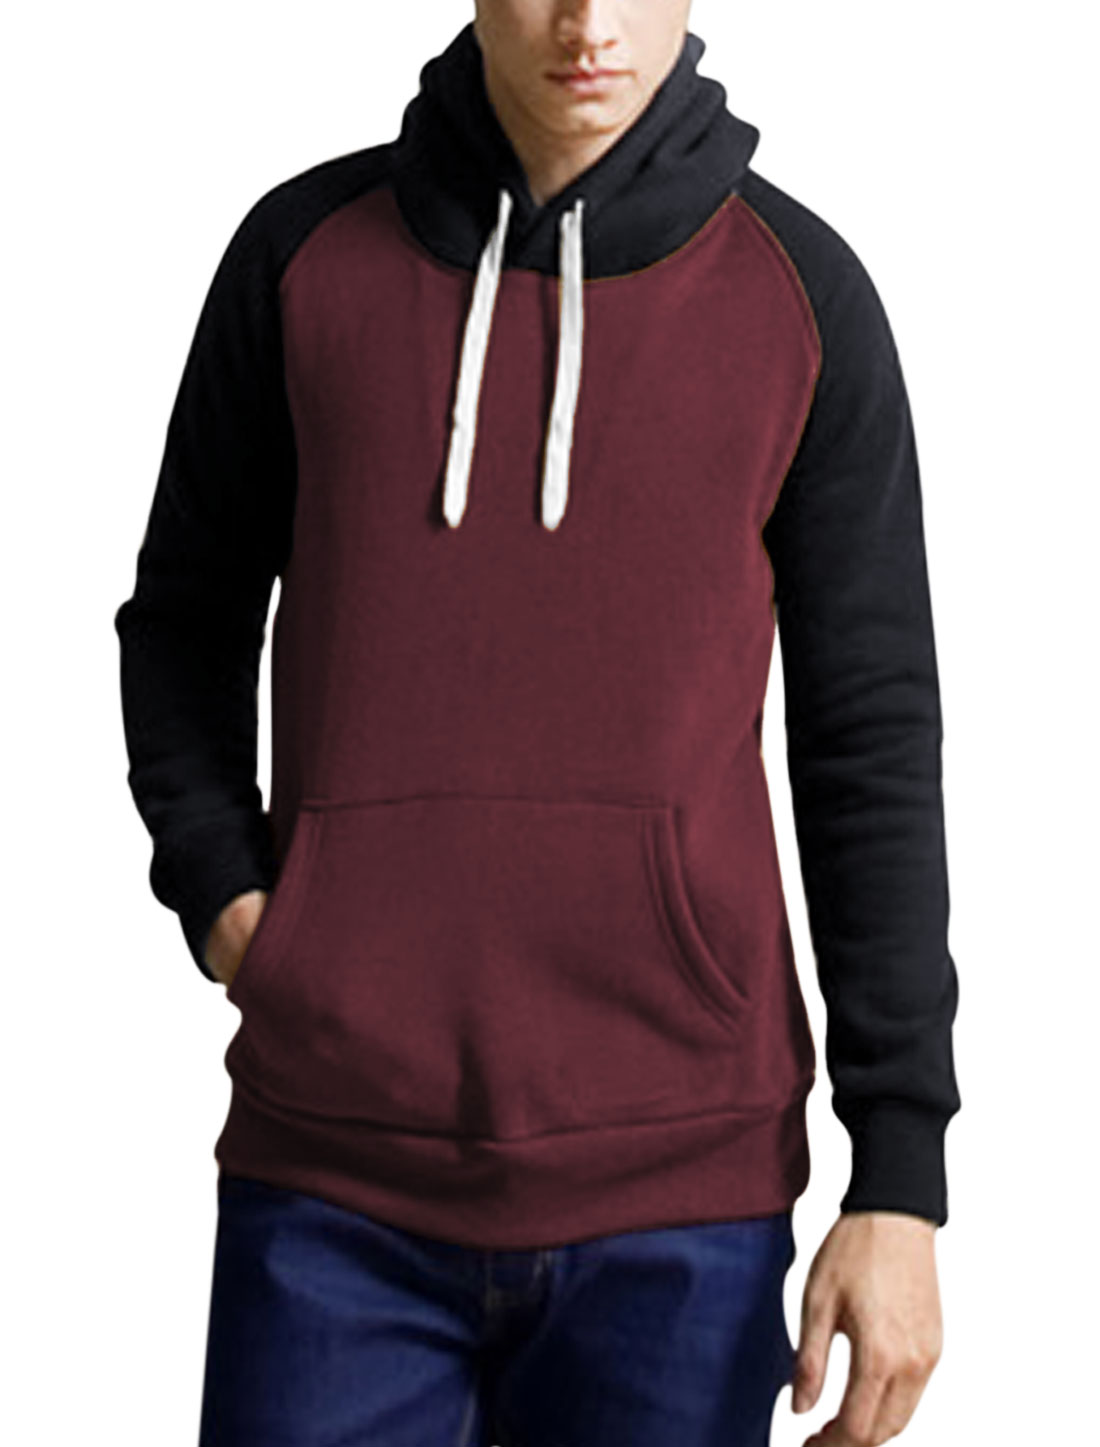 Men Drawcord One Kangaroo Pcoket Thick Hooded Sweatshirt Burgundy Navy Blue M